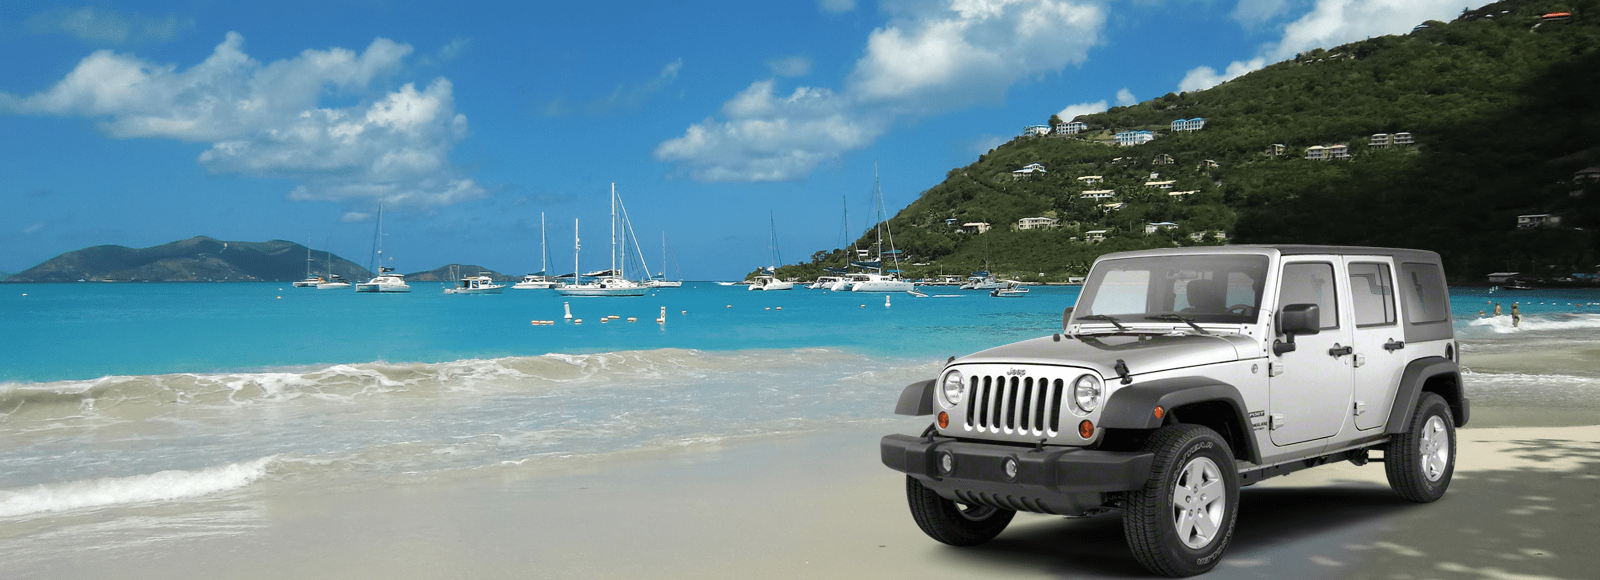 St-Maarten_beach+Jeep